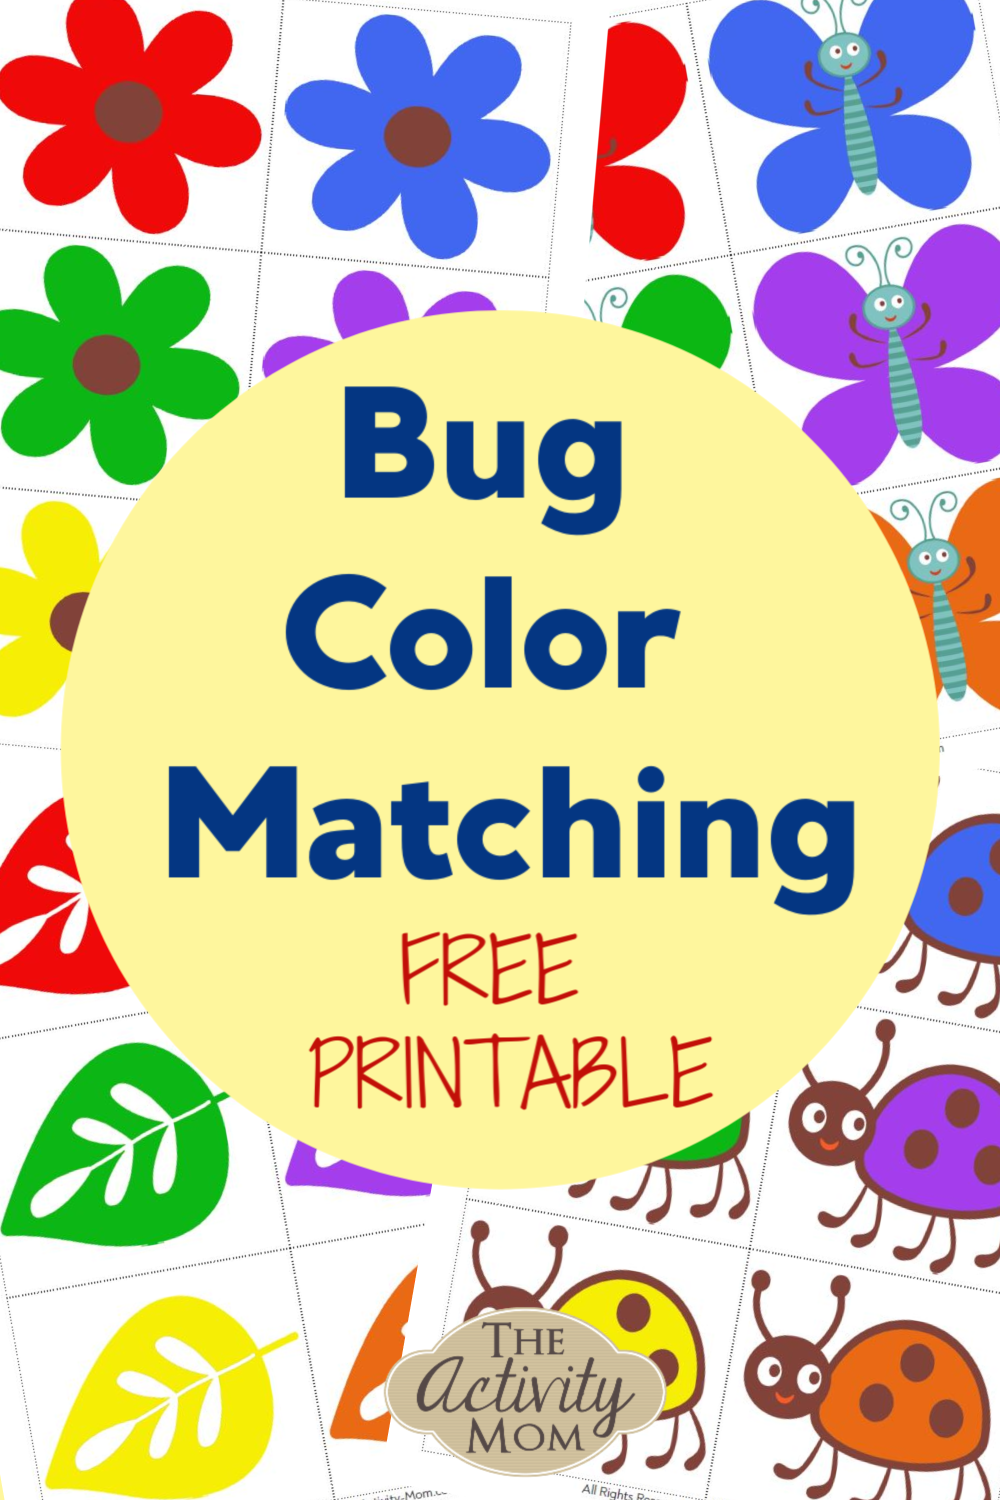 Color Matching Bugs The Activity Mom Color Games For Toddlers Toddler Free Printables Printable Activities For Kids